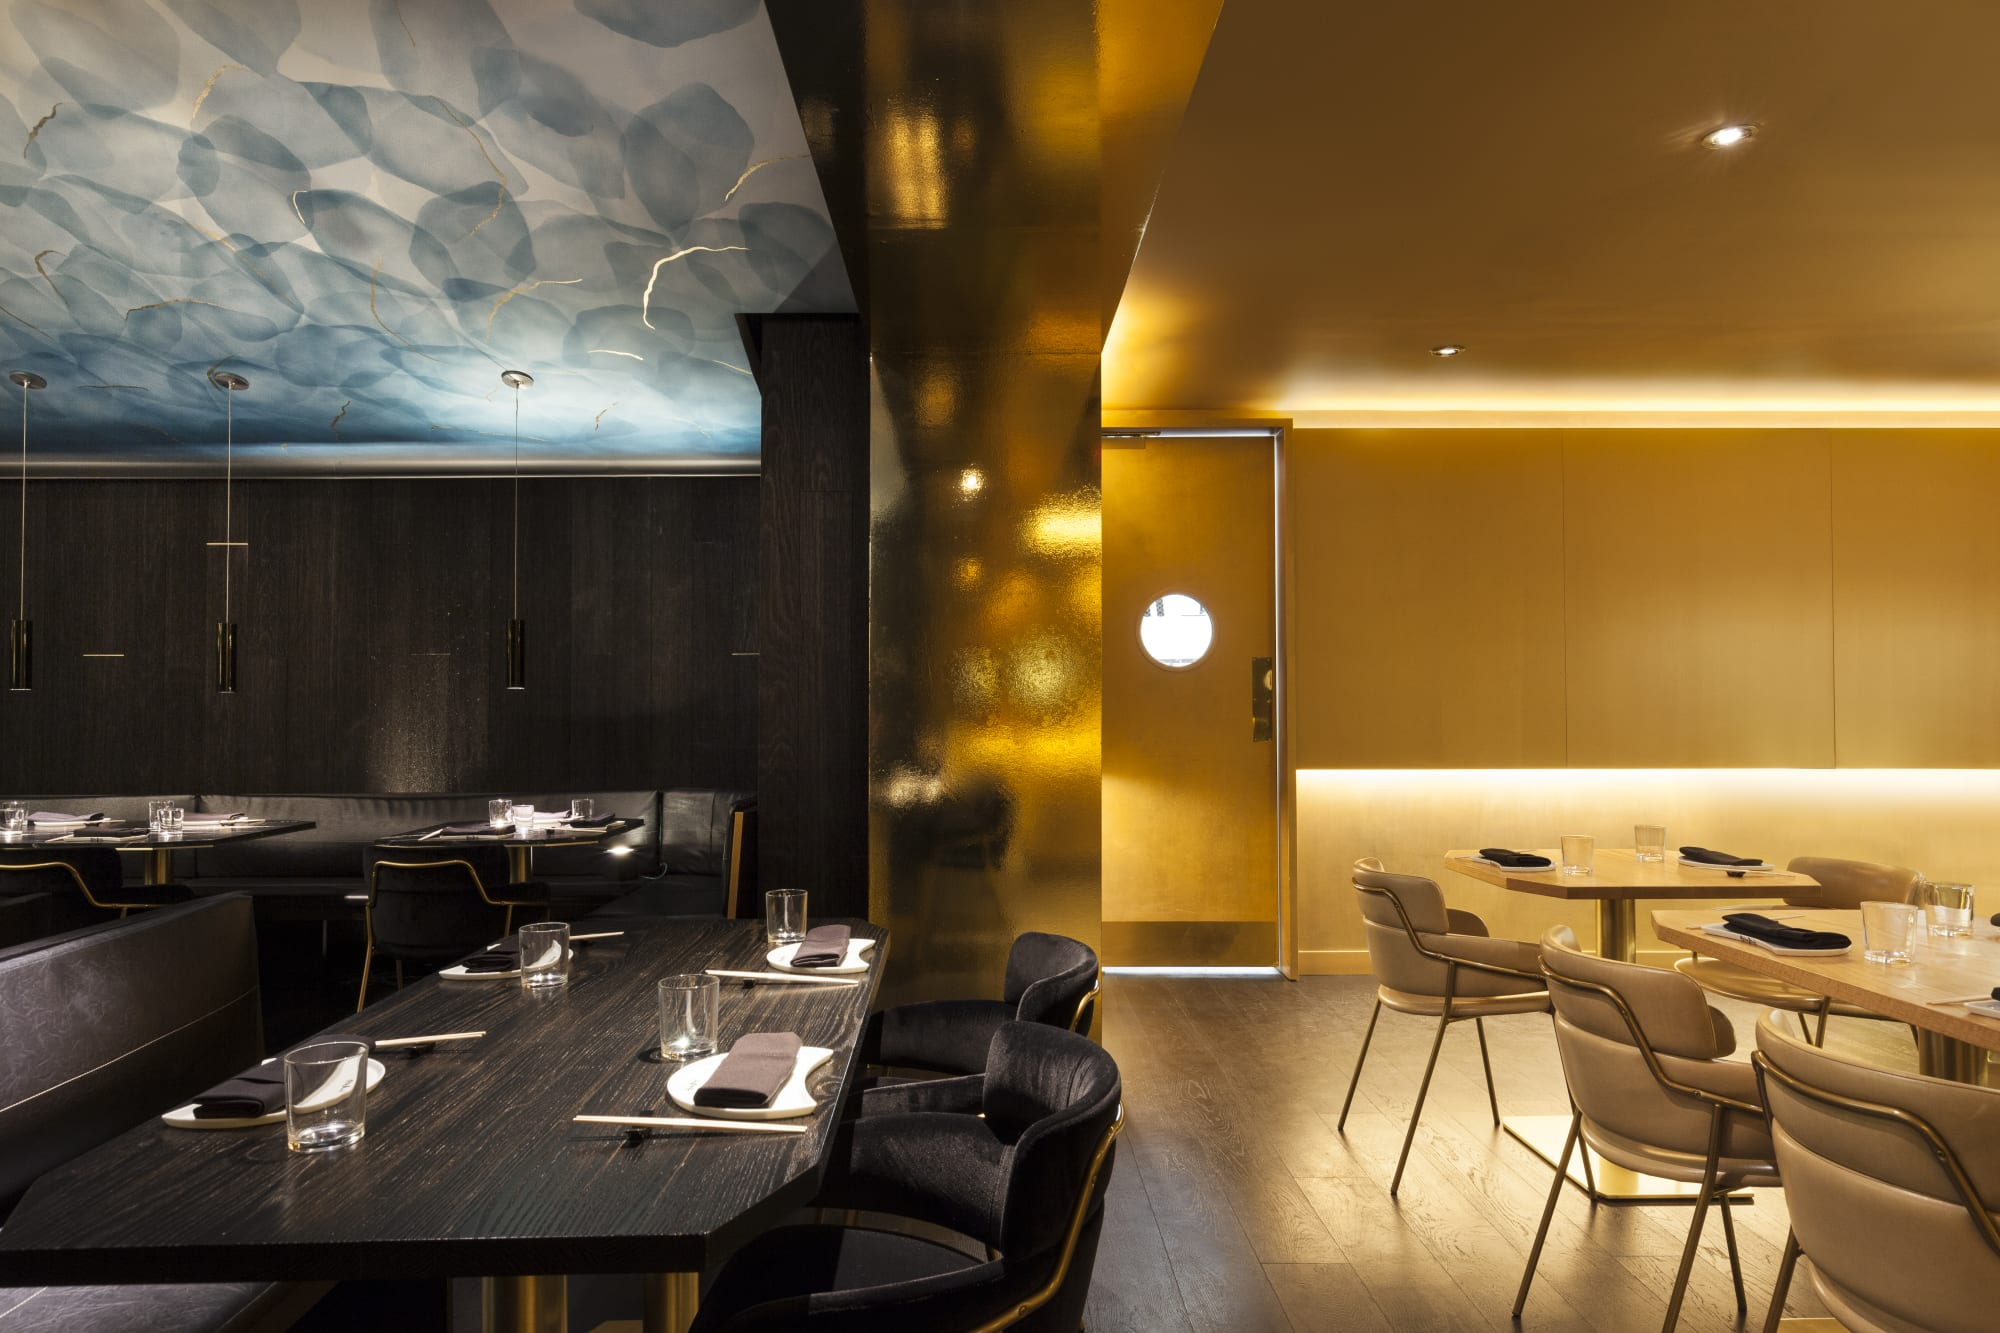 Interior Design by Studio Munge seen at Akira Back, Toronto - Interior Design